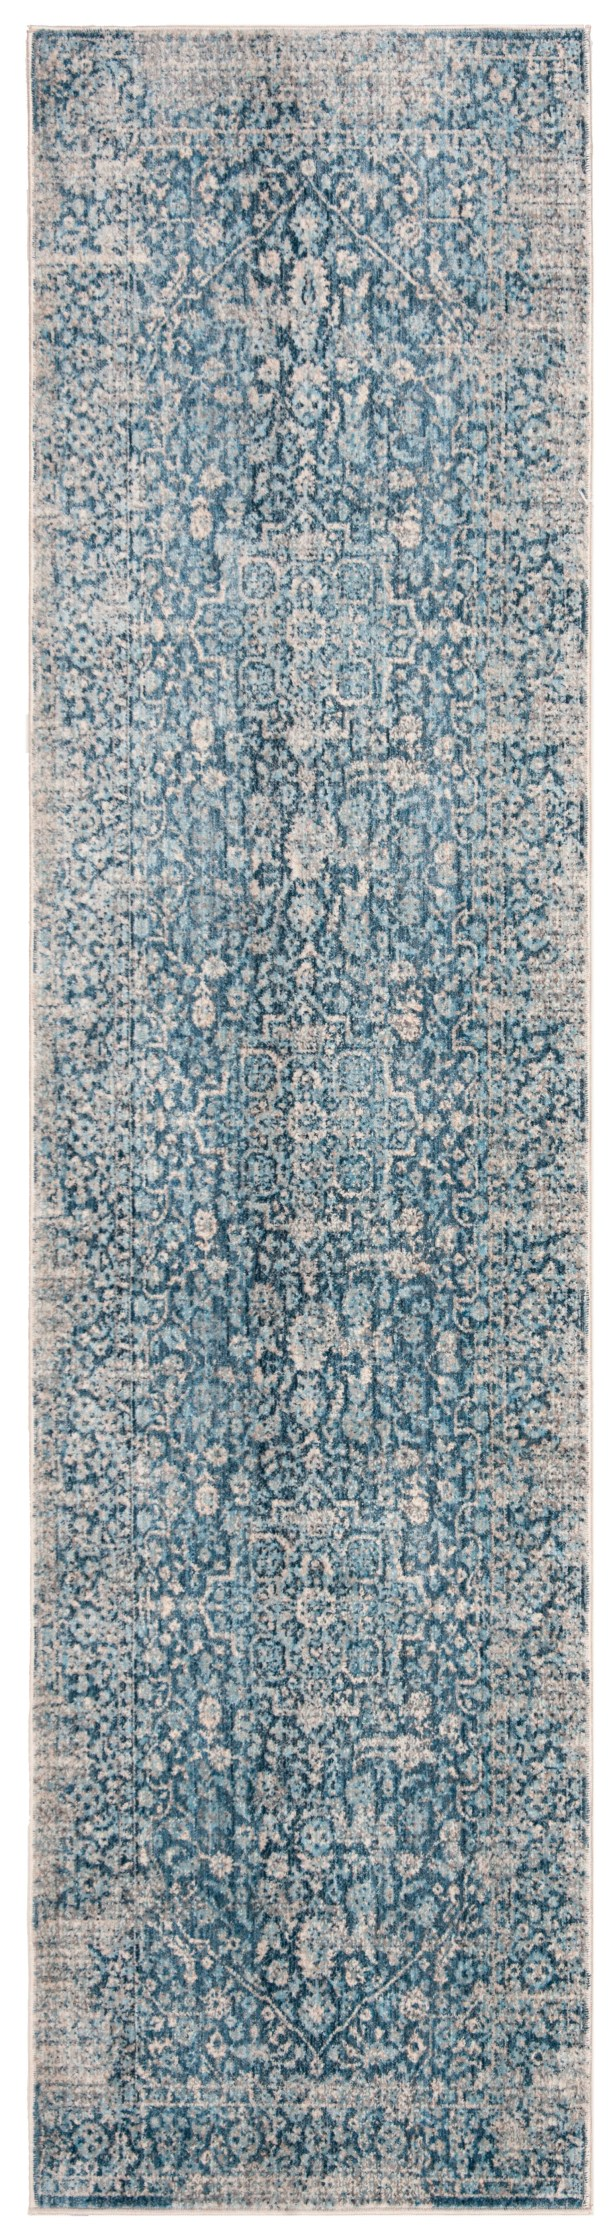 Coweta Vintage Persian Cotton Blue/Ivory Area Rug Rug Size: Rectangle 9' X 11'7